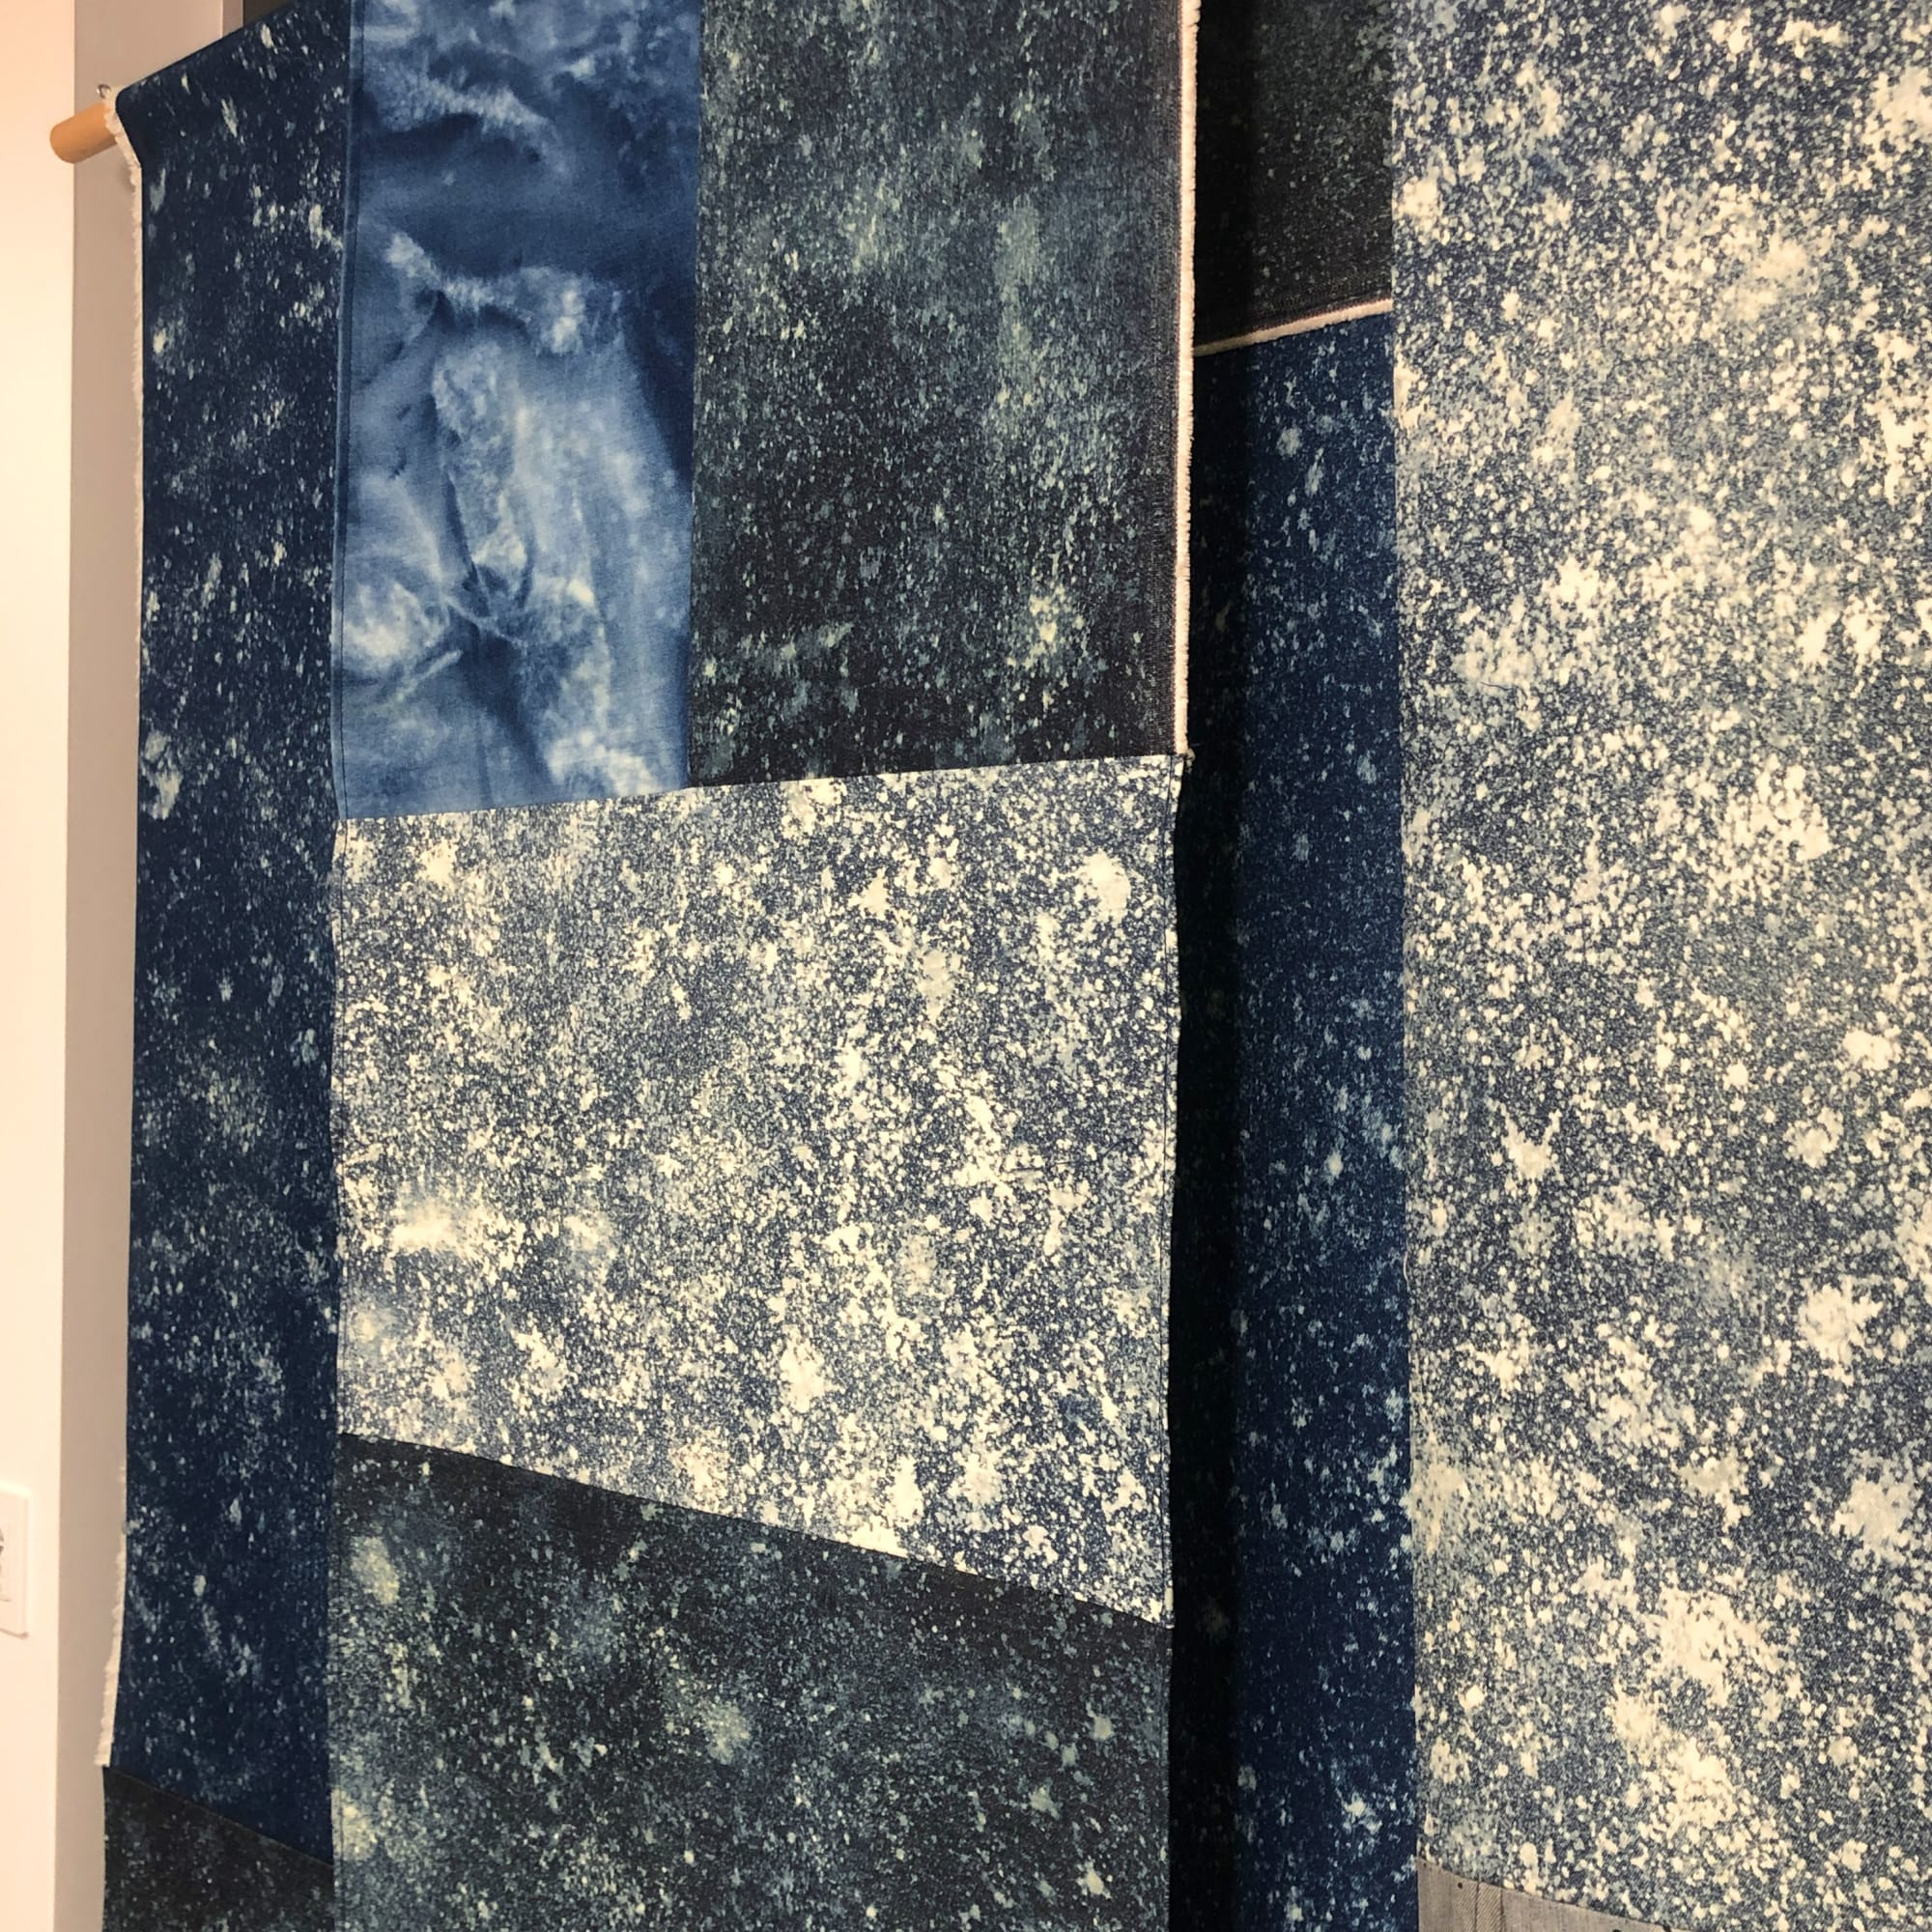 """Wall Hangings by ANTLRE - Hannah Sitzer seen at Google RWC SEA6, Redwood City - """"Midnight"""""""